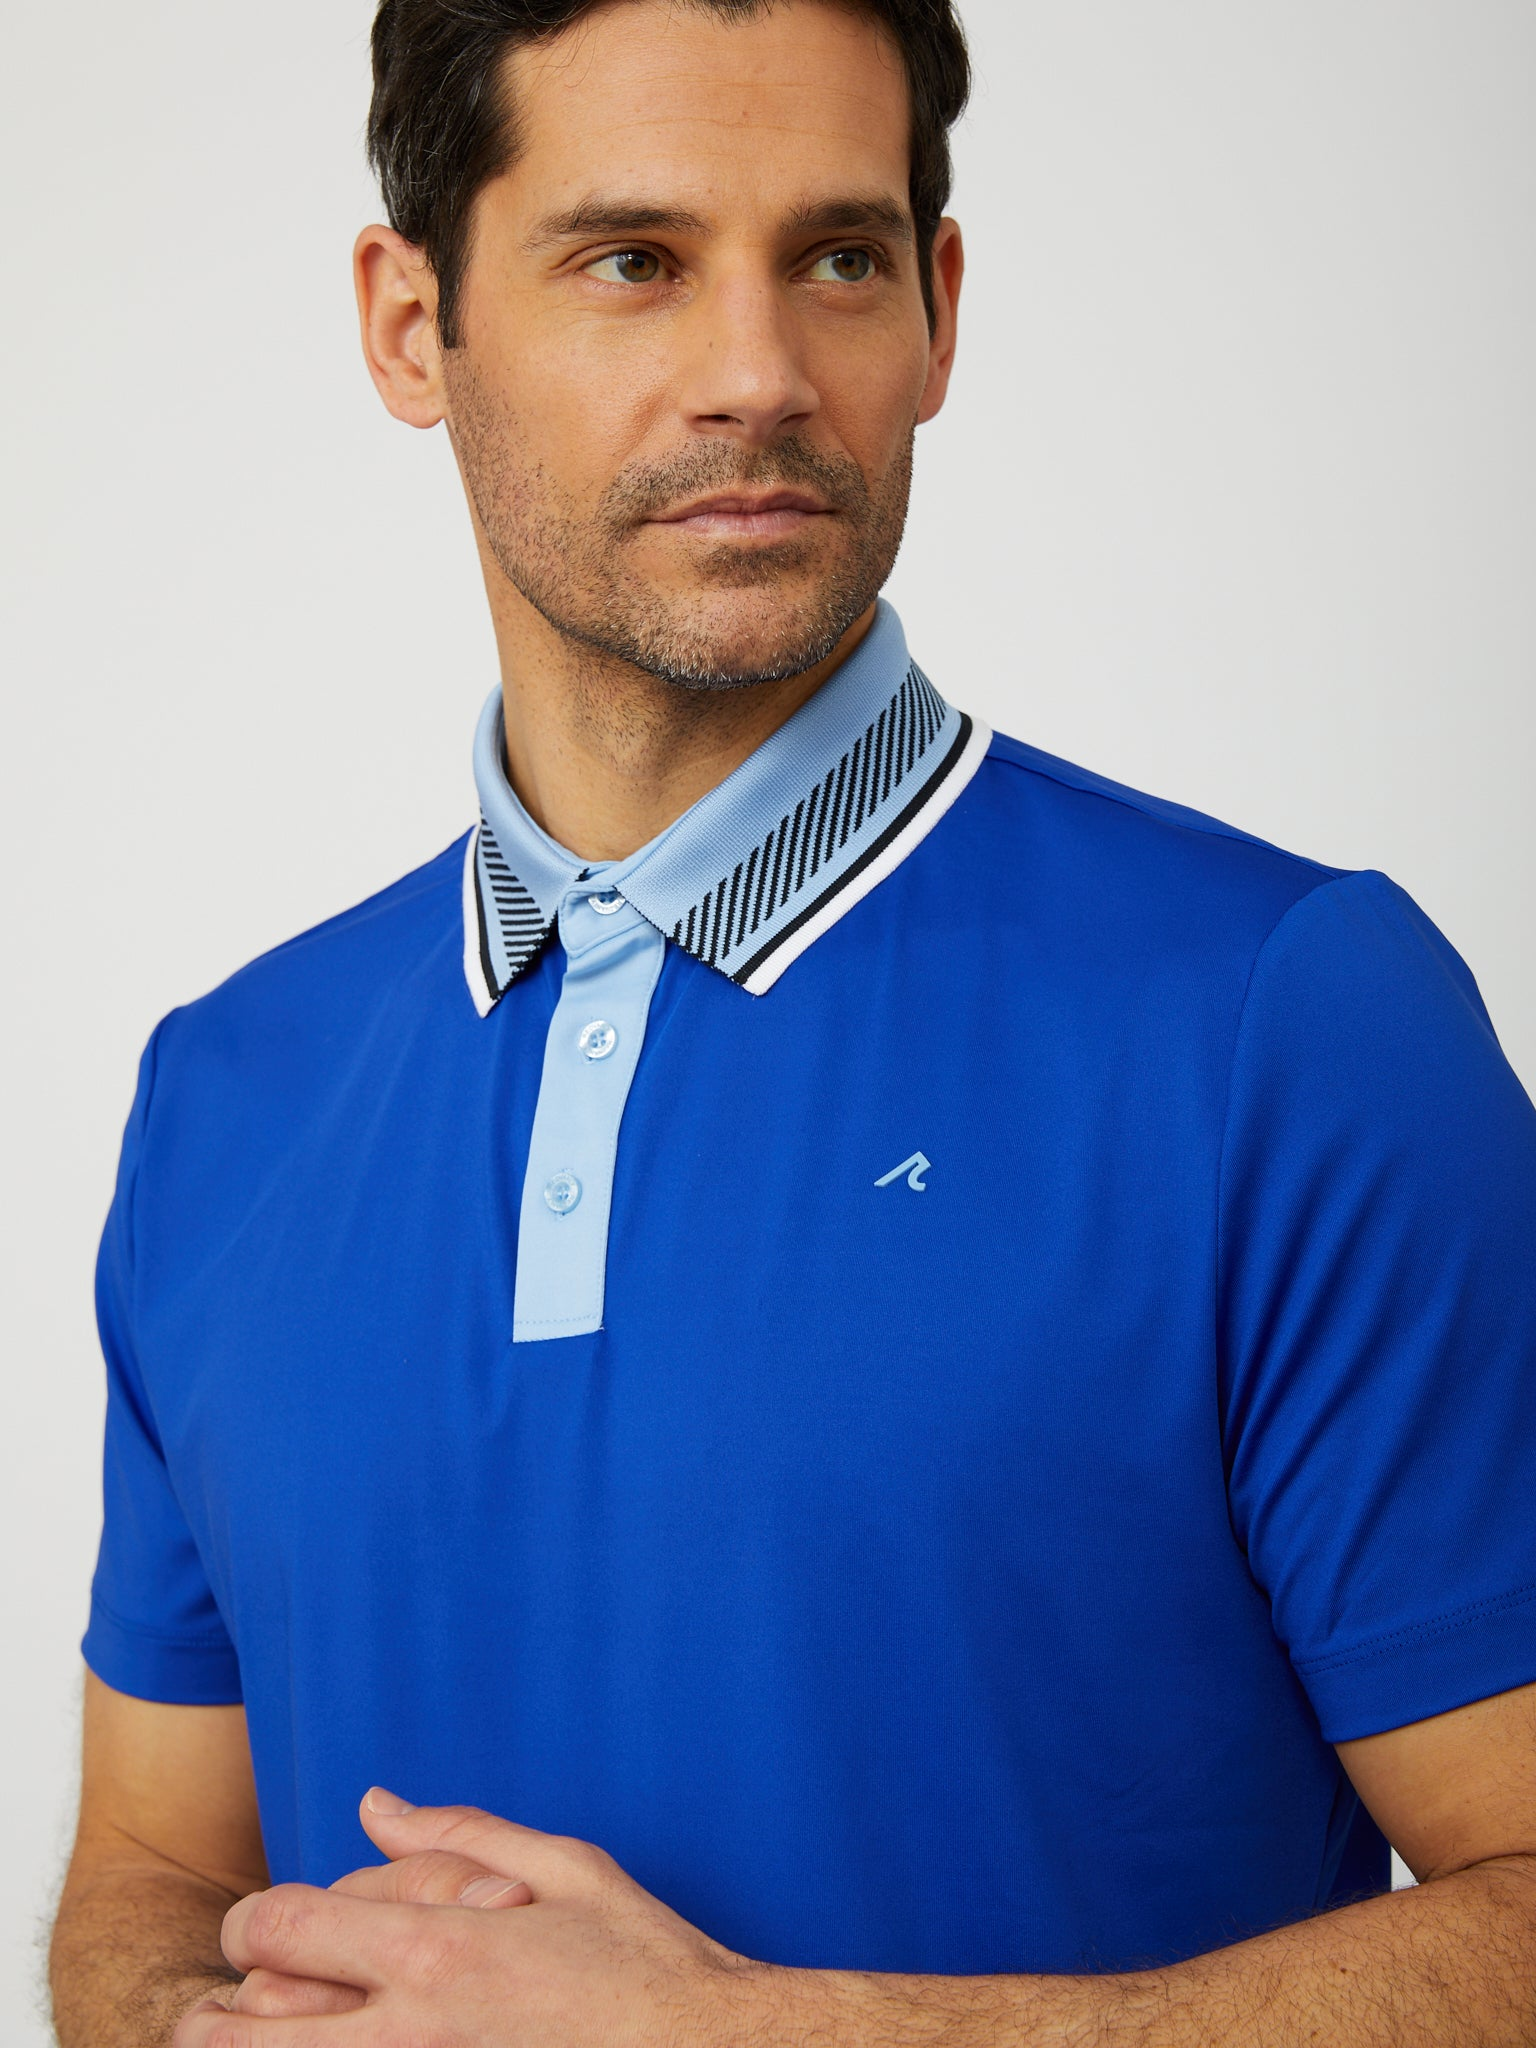 Truet Polo in Reflex Blue